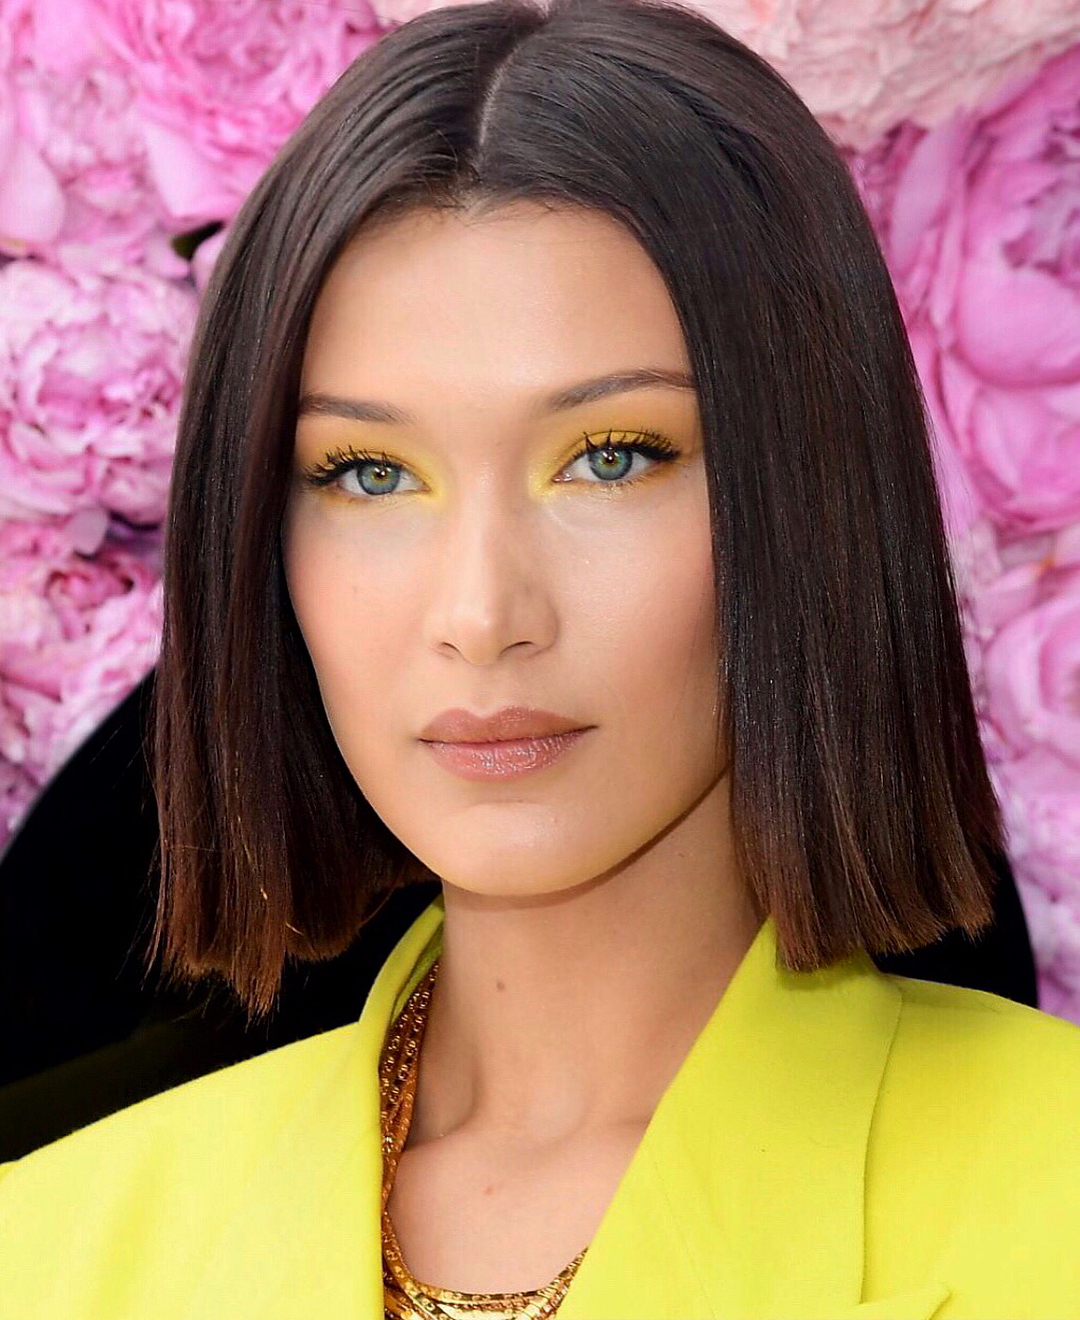 Cannes Film Festival 2018: The Best Skin, Hair and Makeup